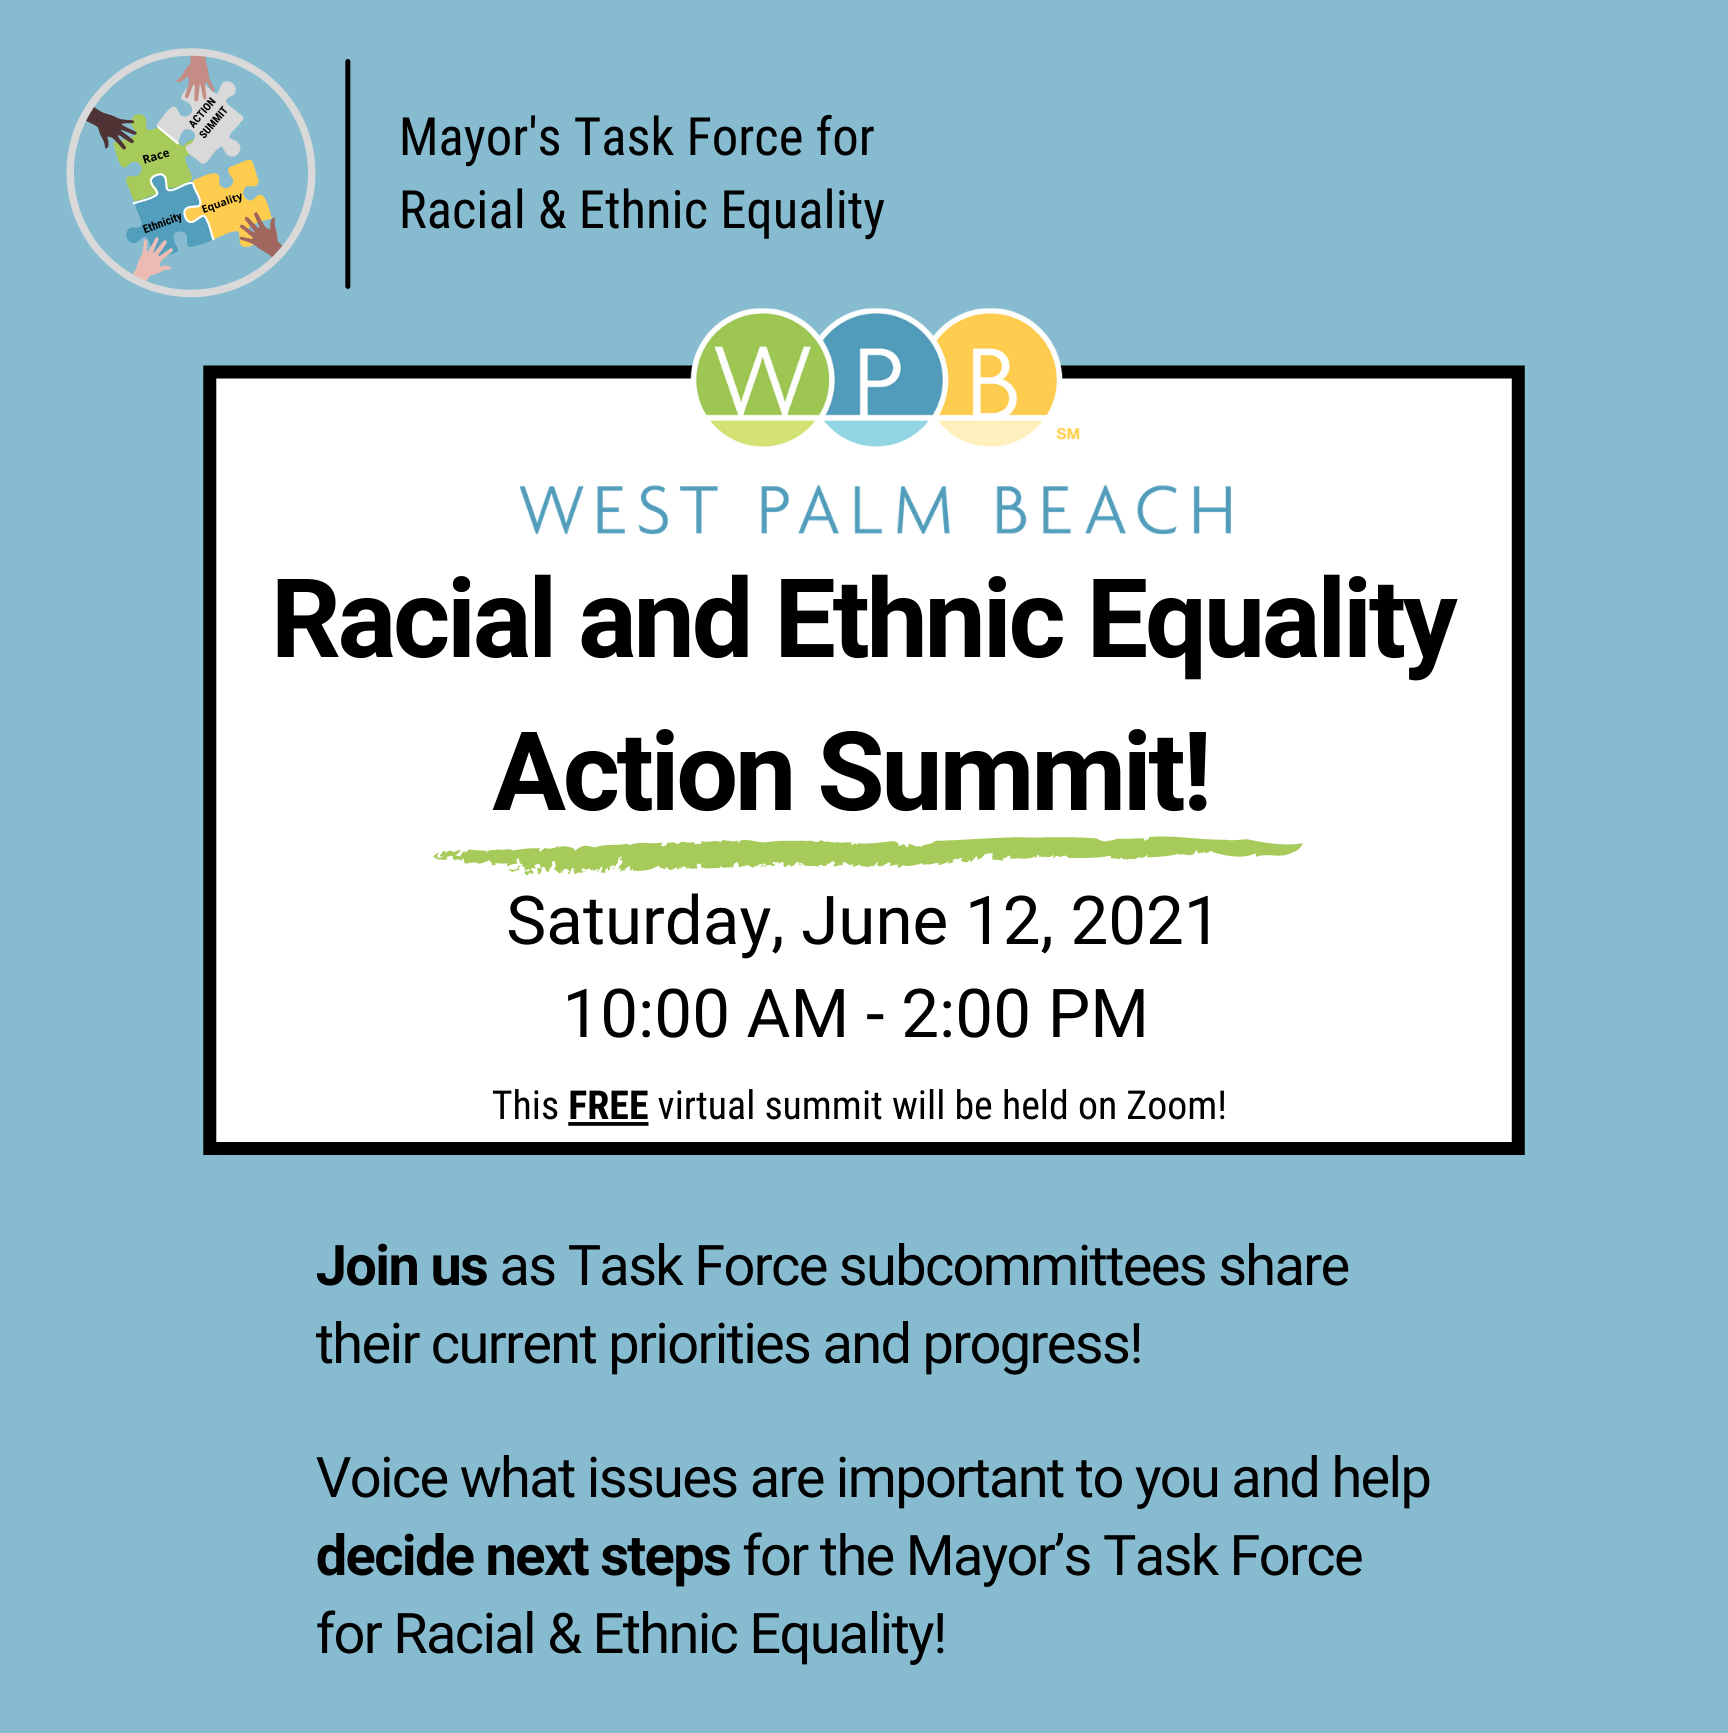 West Palm Beach Racial & Ethnic Equality Action Summit